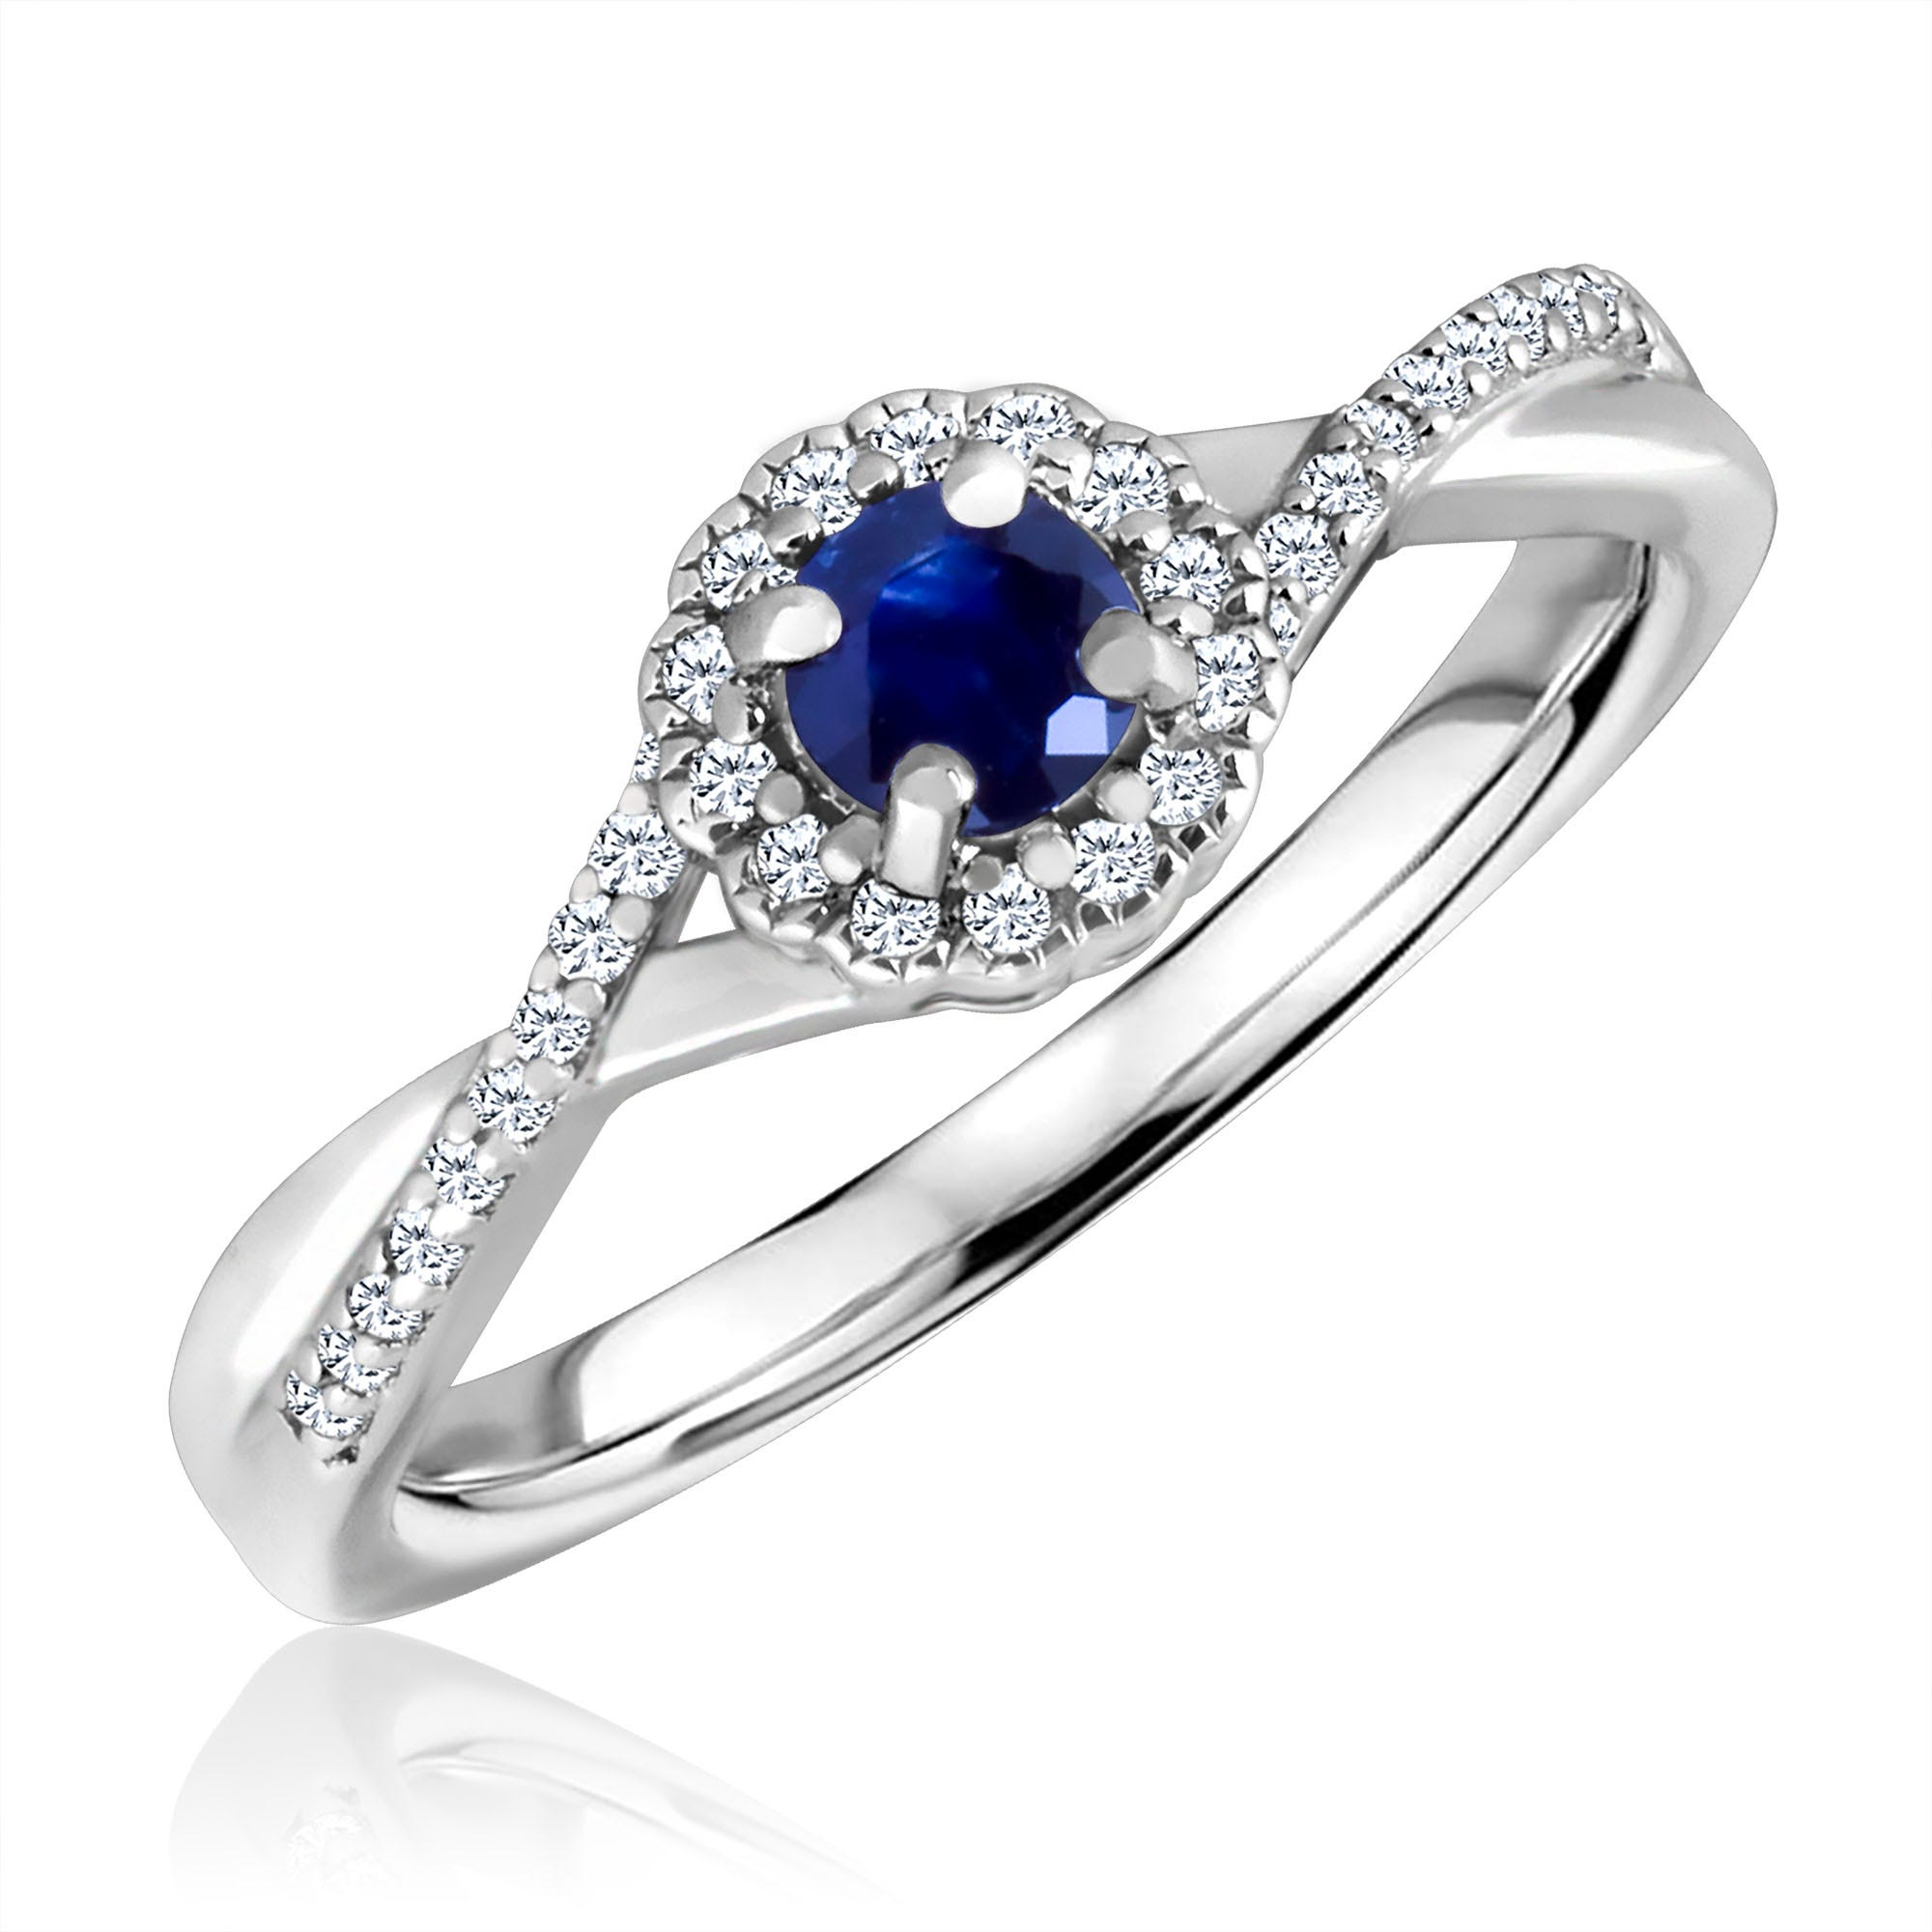 Round-Cut Sapphire & Diamond Infinity Ring in Sterling Silver